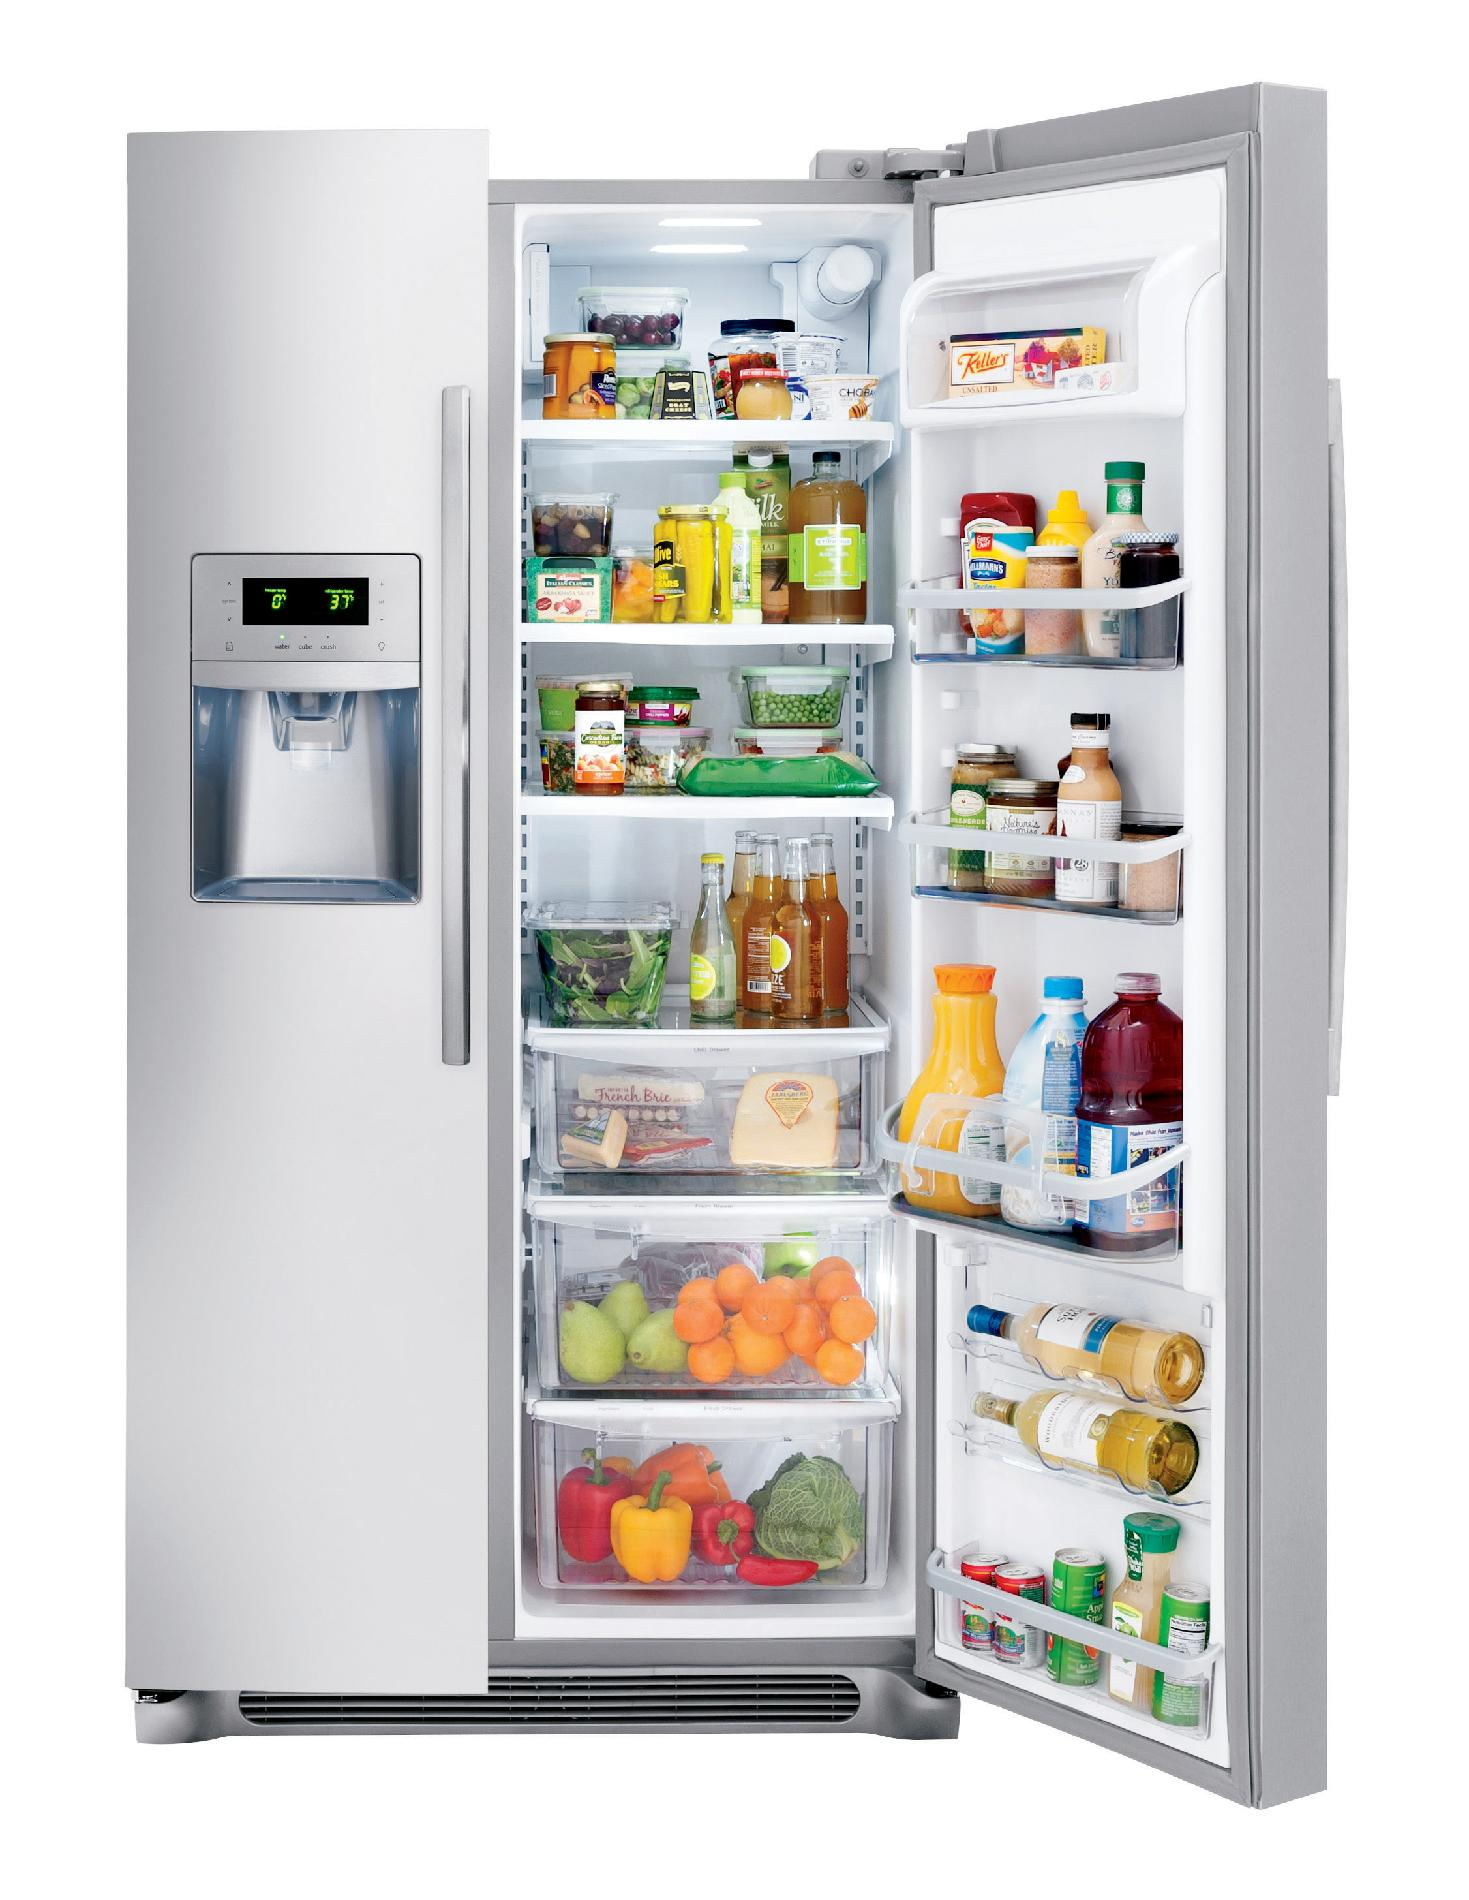 Frigidaire Professional 22.6 cu. ft. Counter-Depth Side-by-Side Refrigerator - Stainless Steel